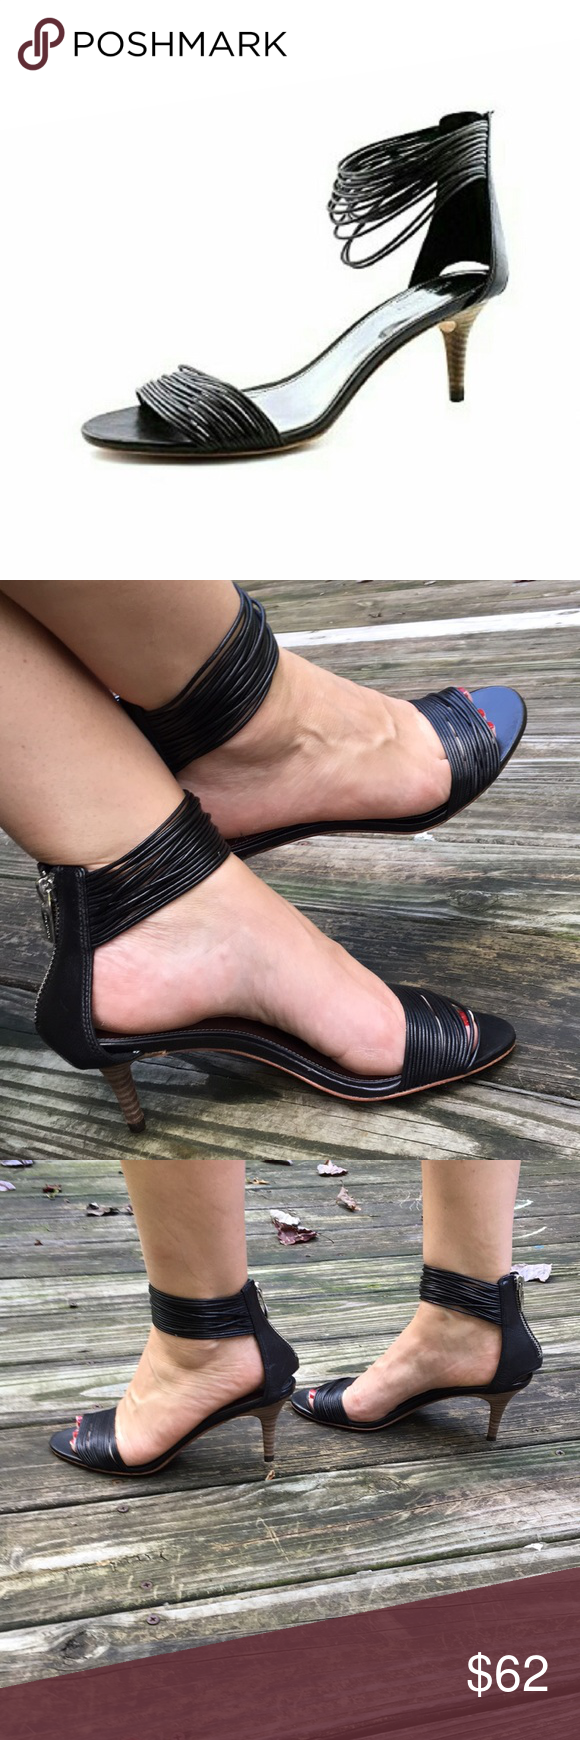 122adc4d222 Coach Manya black leather strappy kitten heels 7.5 Coach Manya black  leather strappy kitten heels 7.5